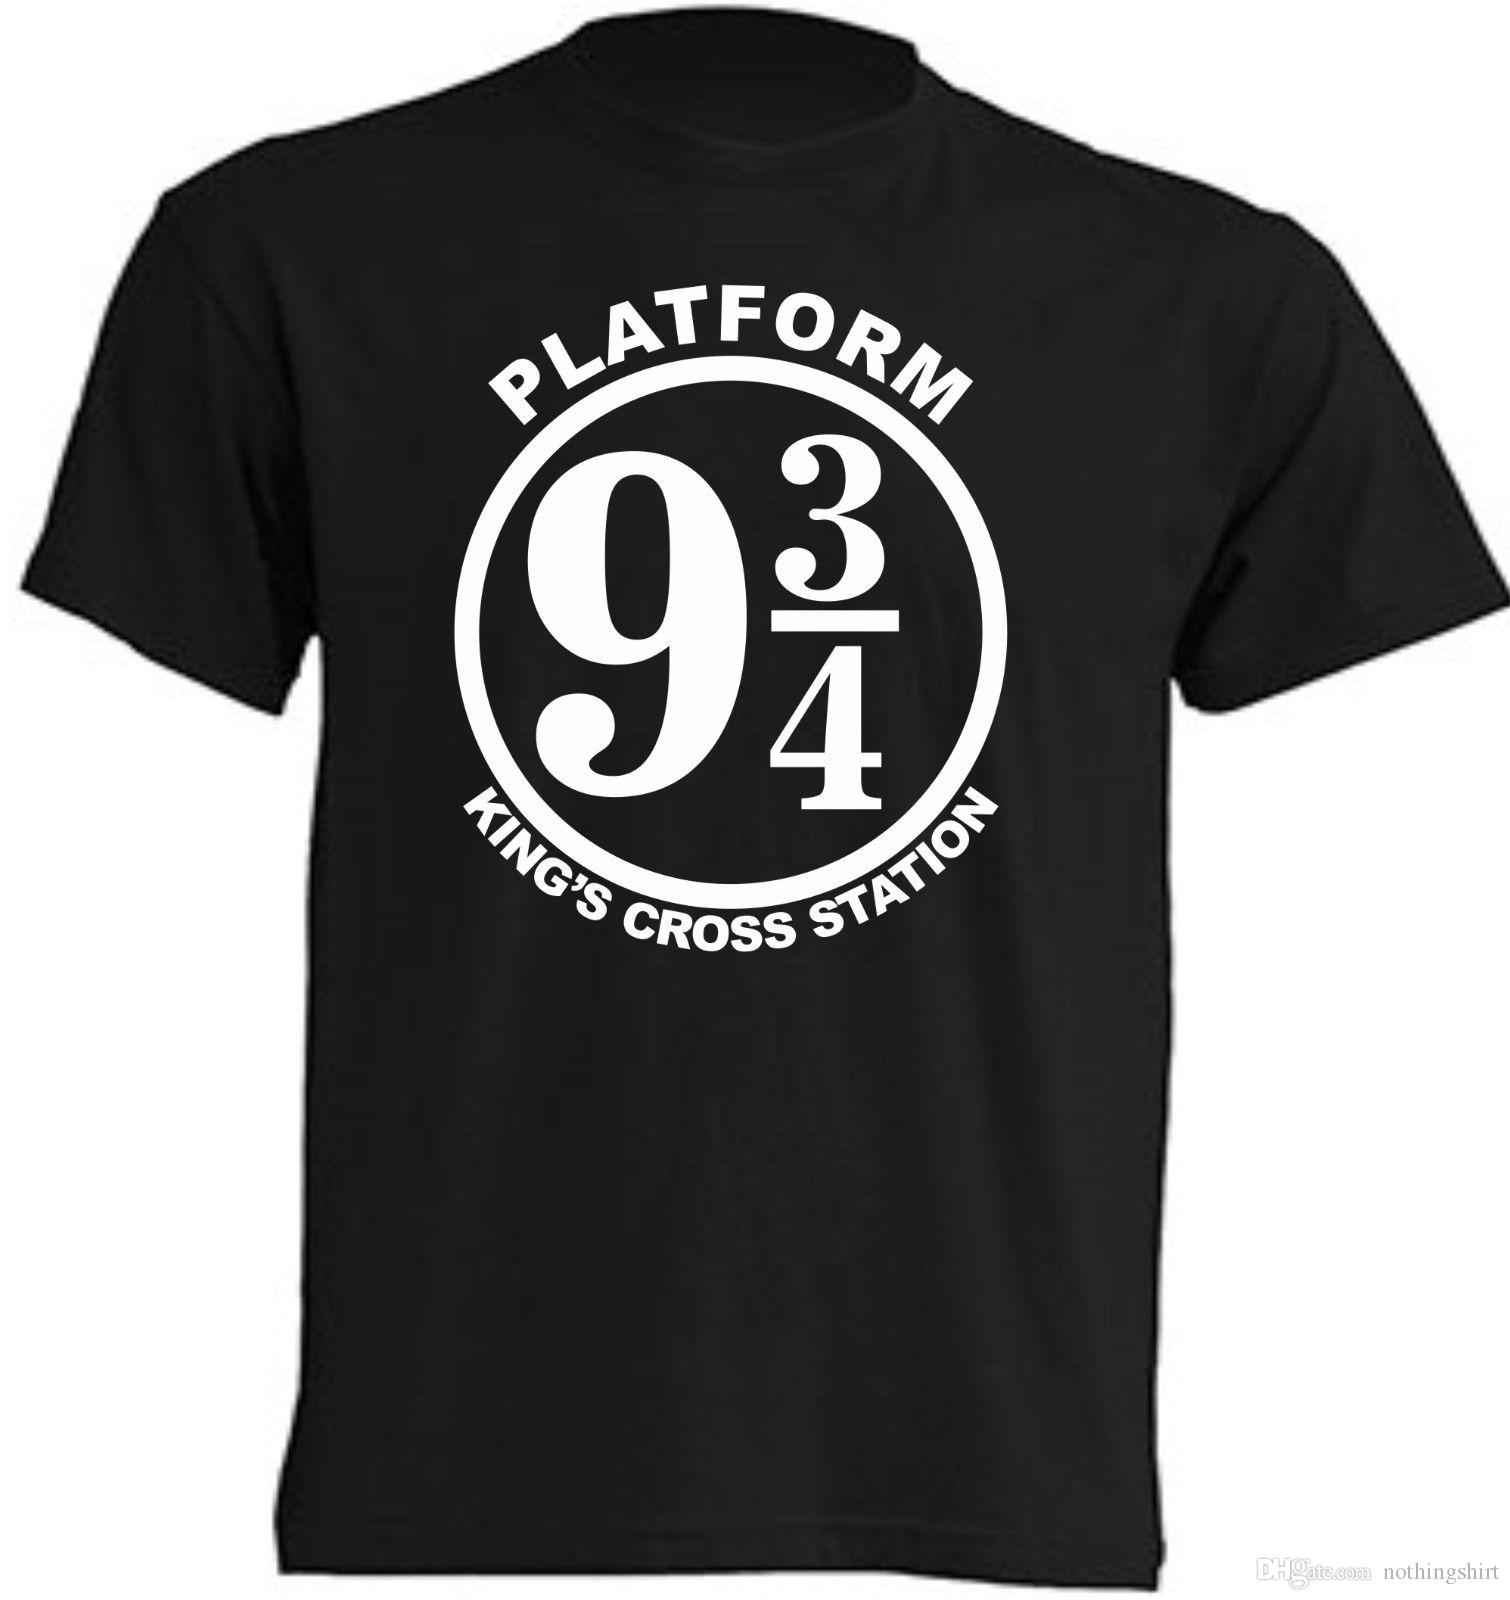 9532f86d6 CAMISETA ANDEN 9 3 4 HARRY POTTER NIÑOS Y ADULTOS Cool Tee Funny Graphic T  Shirts From Nothingshirt